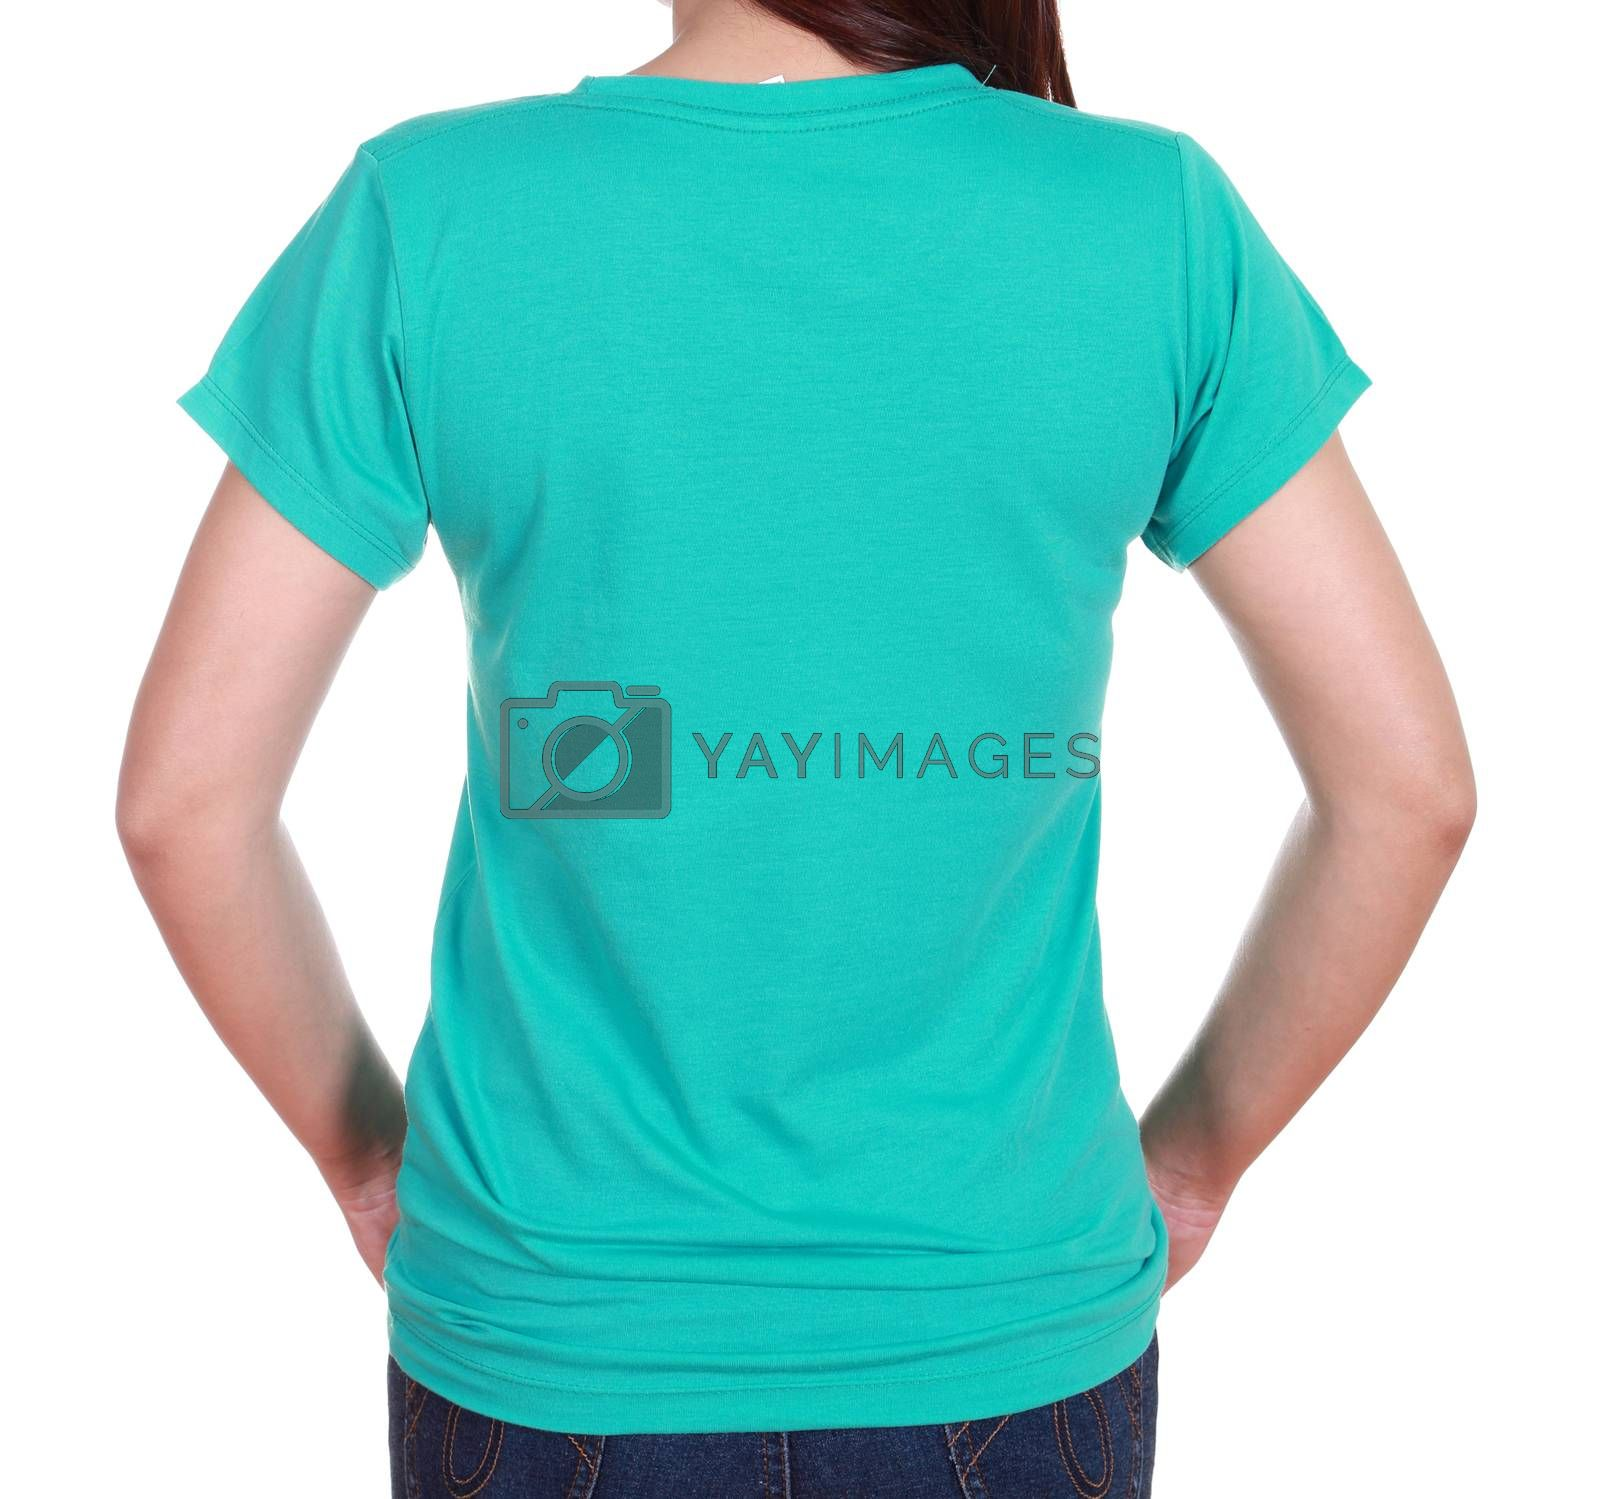 Royalty free image of close-up female with blank t-shirt (back side) by geargodz